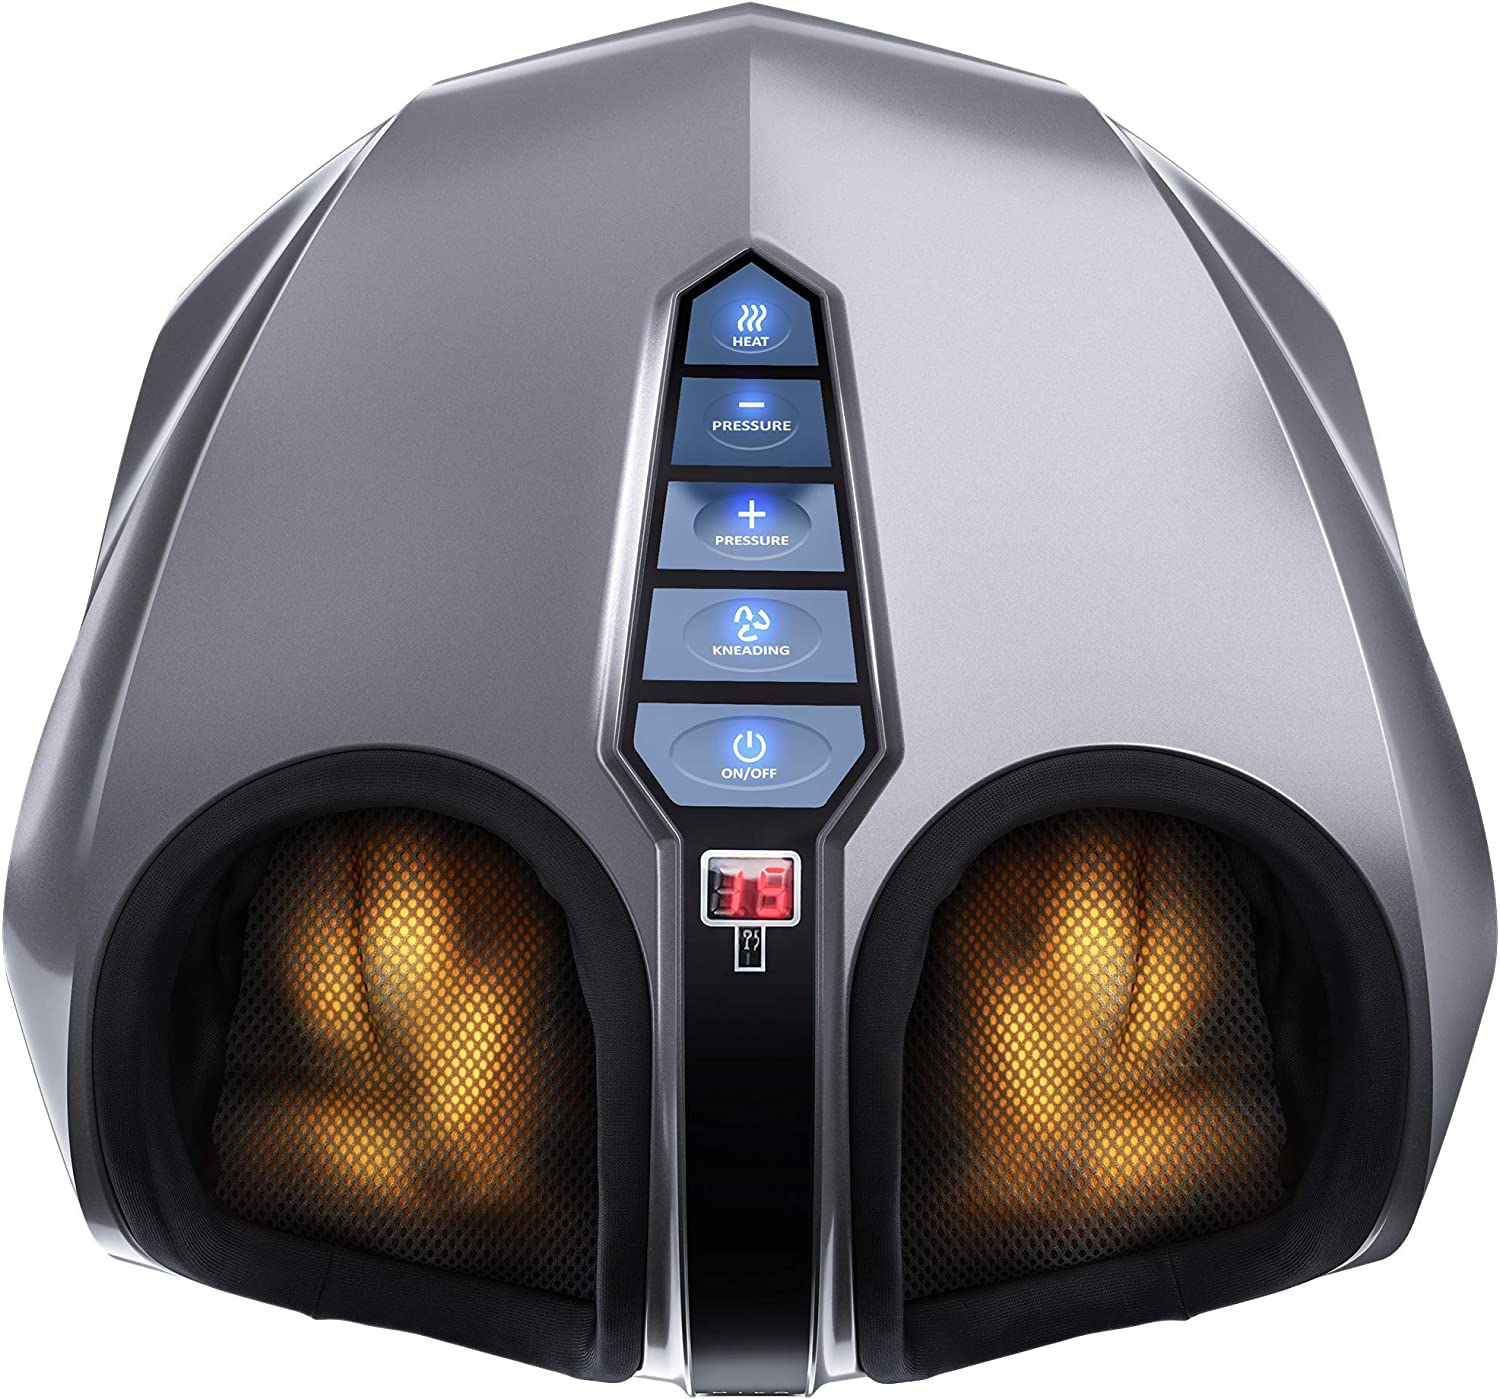 Top 7 Best foot massager for large feet - Buying Guide 2021 1